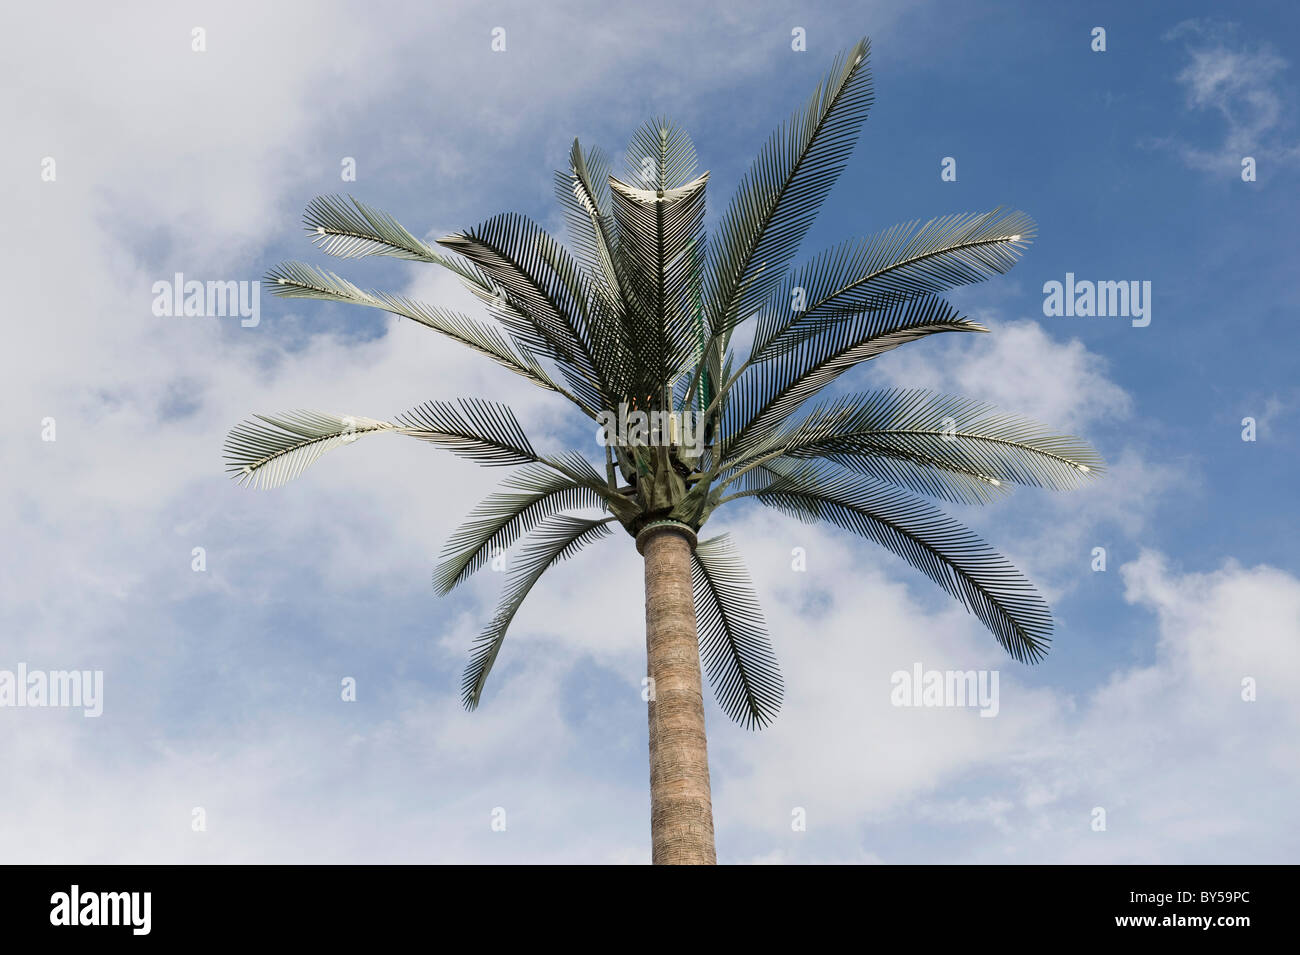 Cellular repeater tower disguised as a palm tree - Stock Image